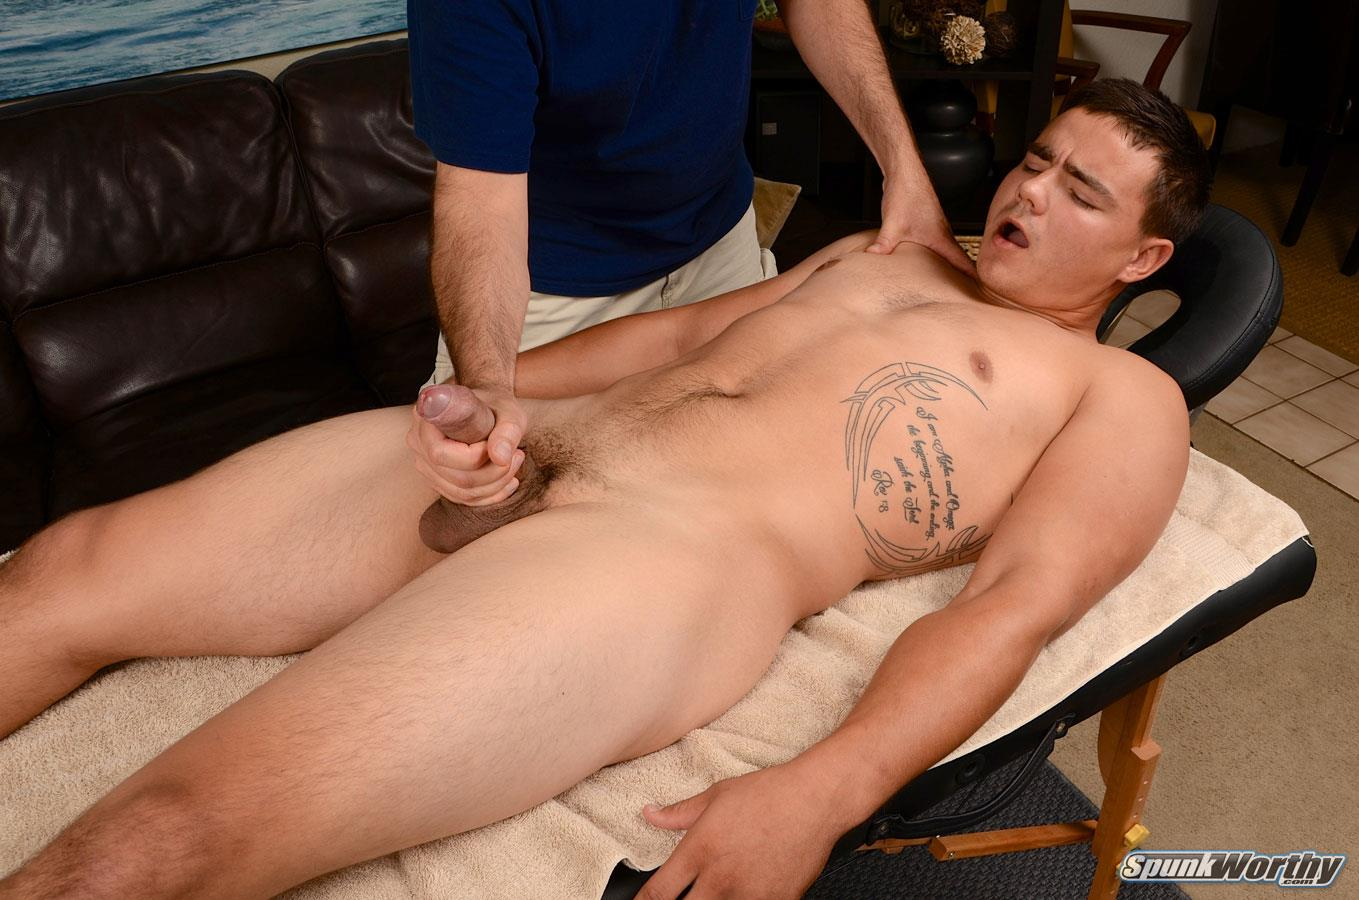 SpunkWorthy Yuri Straight Marine Getting Massage With A Happy Ending Big Uncut Cock Amateur Gay Porn 15 Straight Uncut Marine Gets A Massage With A Happy Ending From A Guy